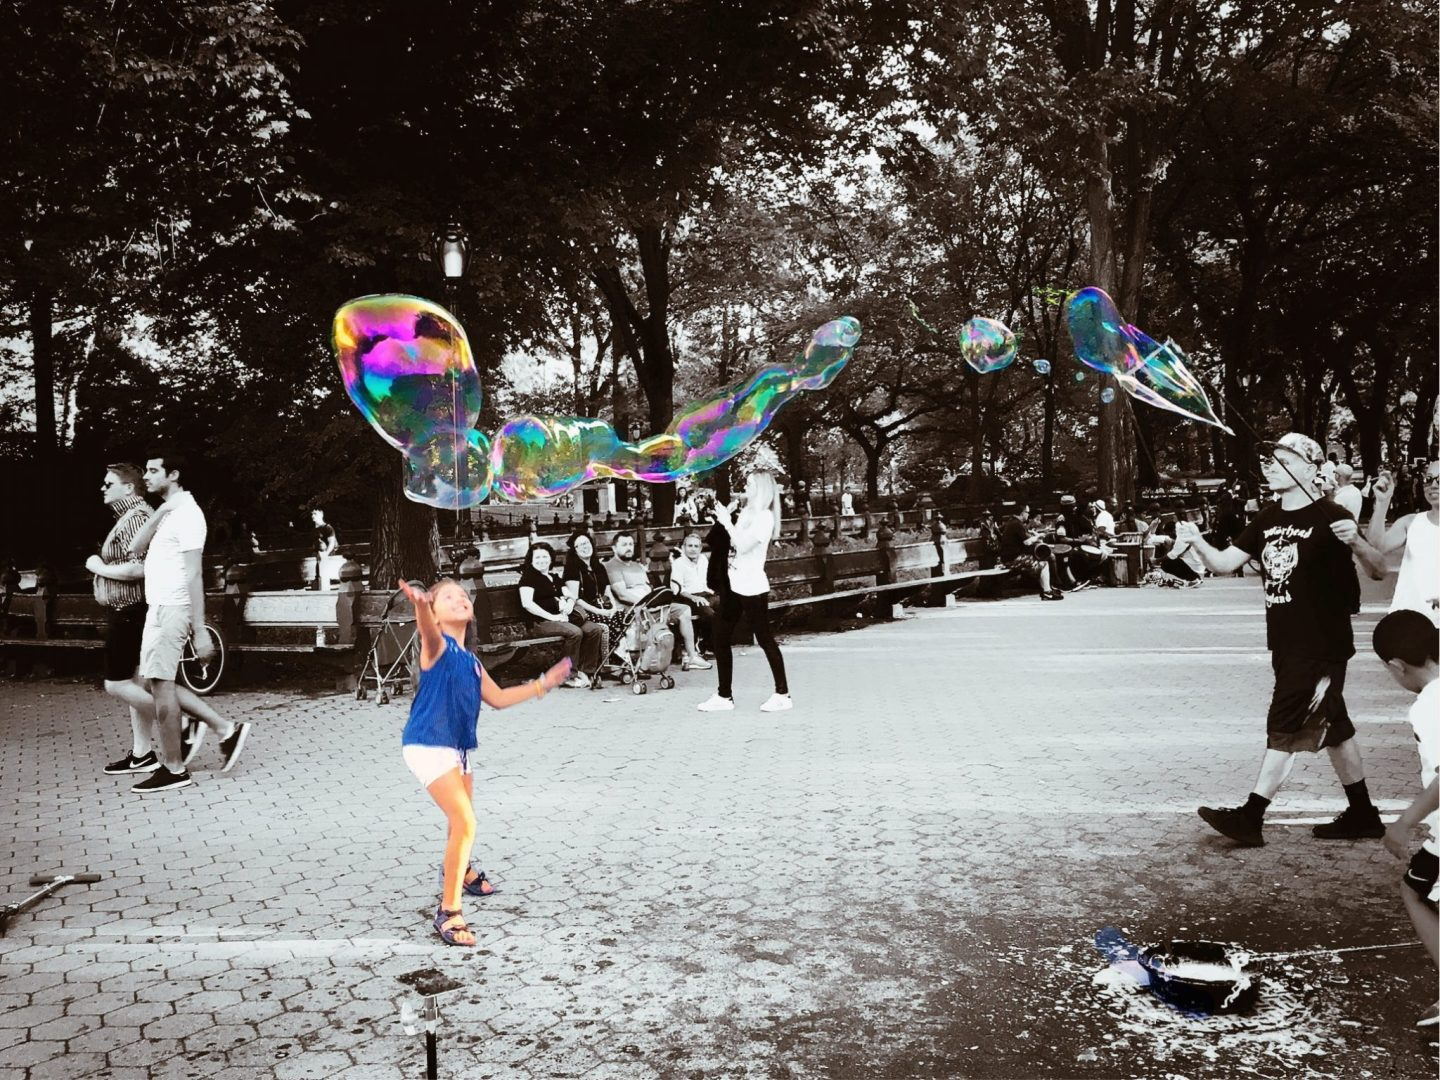 Central Park and Magic with Bubbles